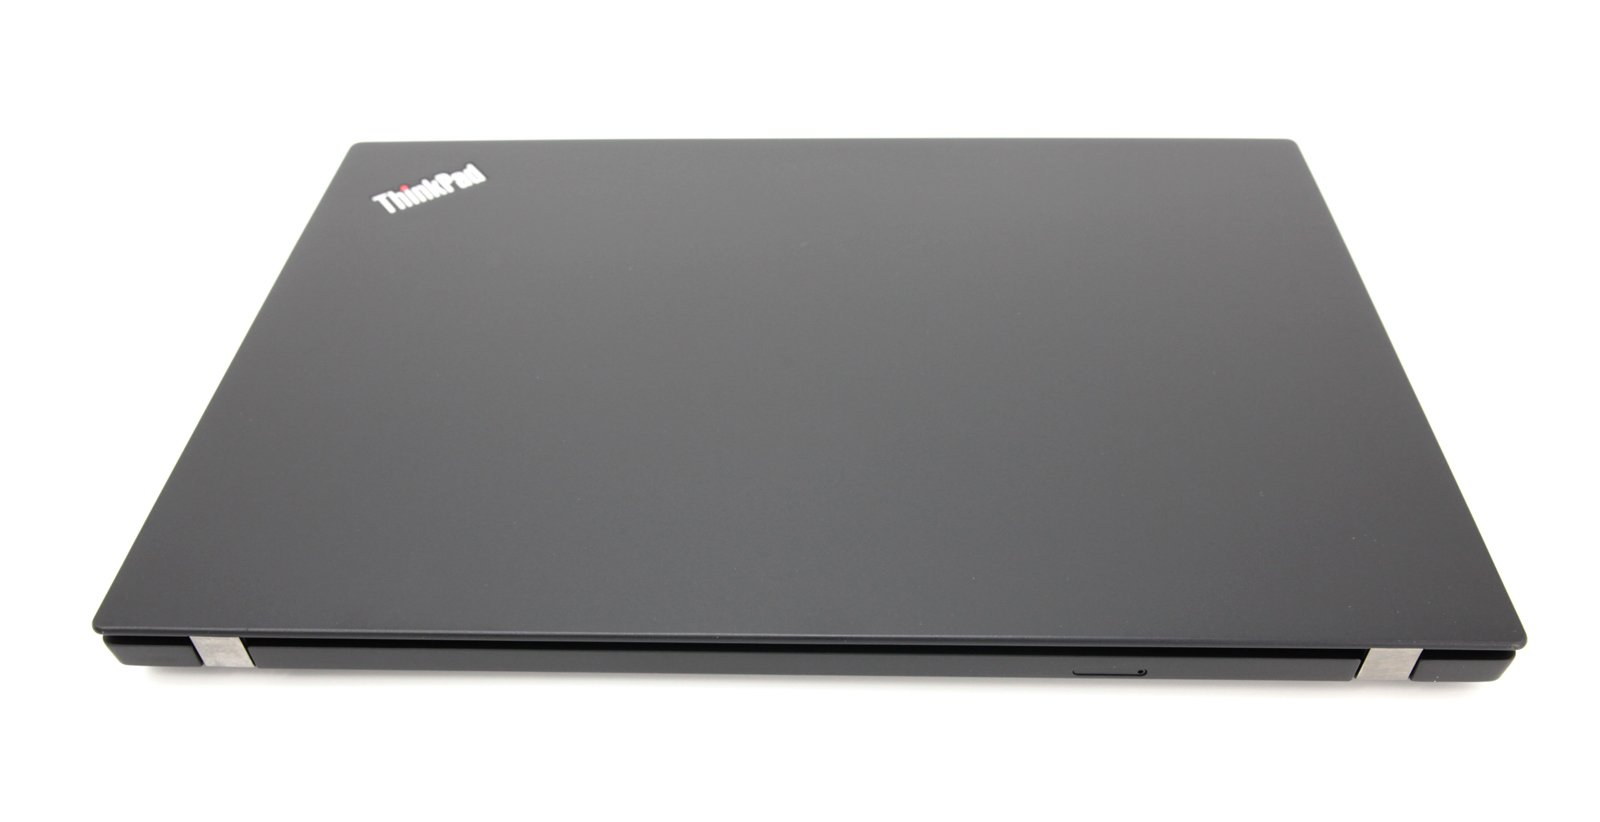 Lenovo Thinkpad T480s IPS Laptop: i5-8350U, 512GB SSD, 8GB RAM Warranty, Inc VAT - CruiseTech